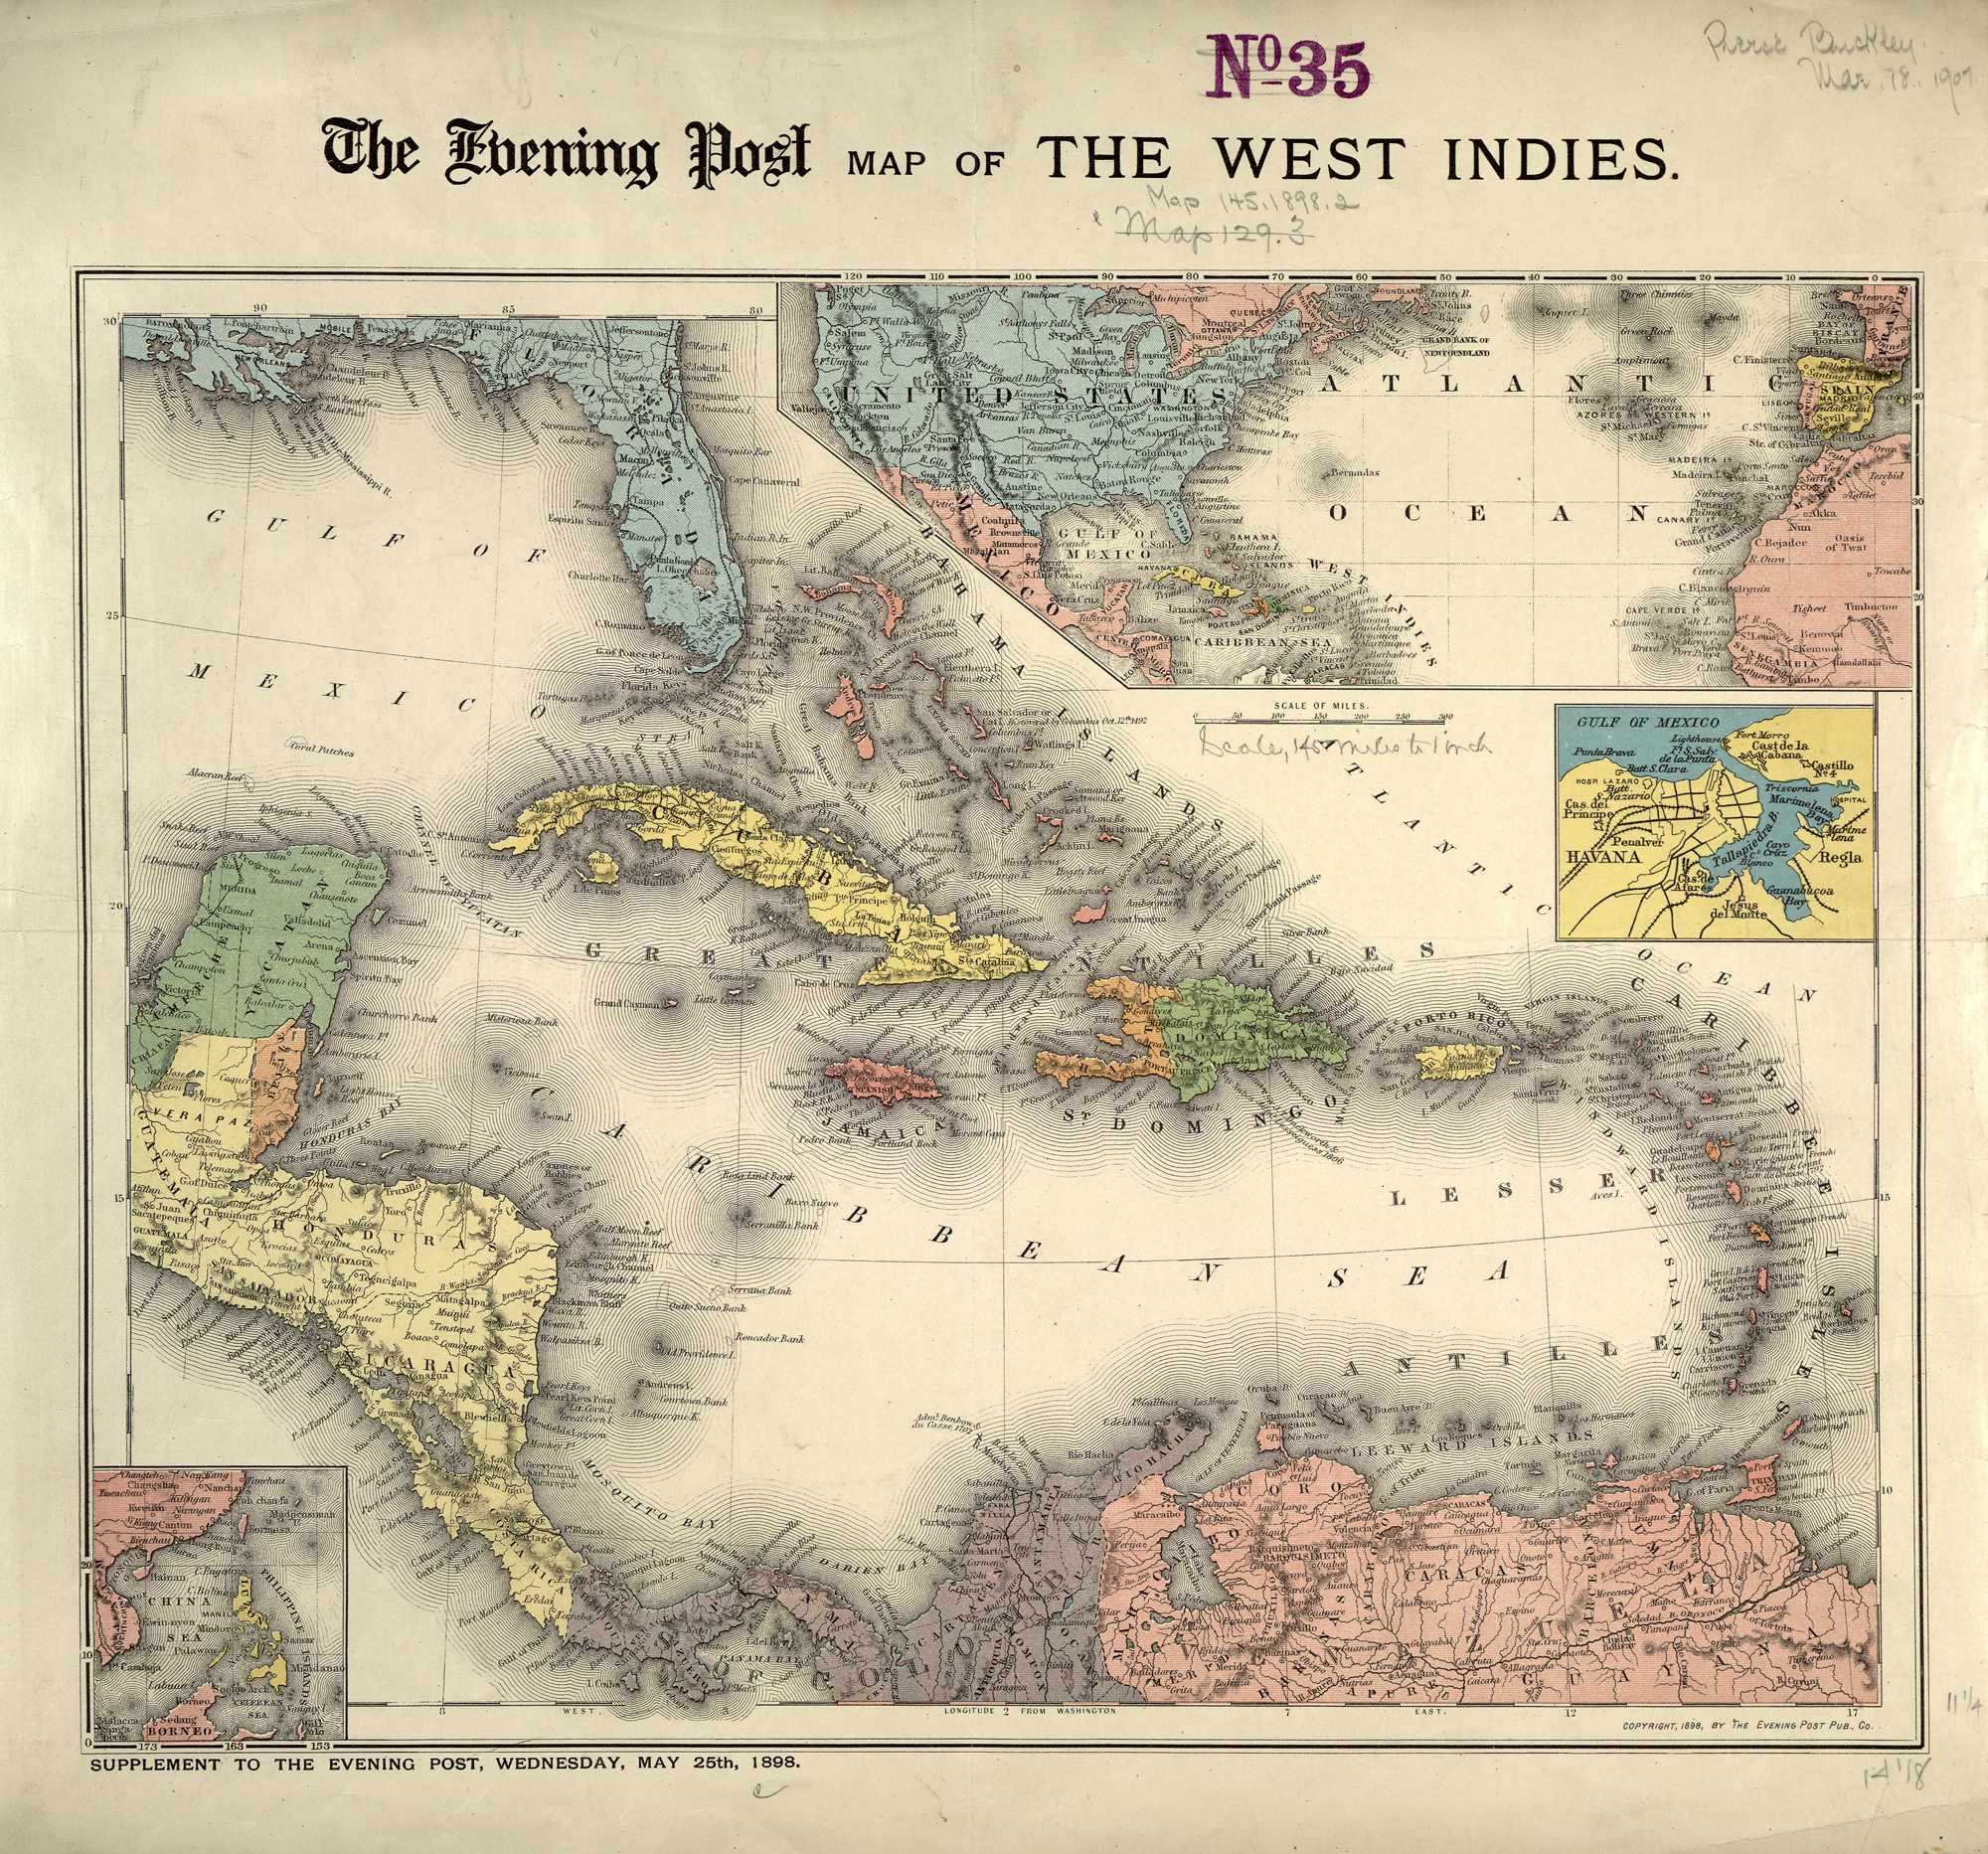 https://upload.wikimedia.org/wikipedia/commons/e/e8/The_Evening_Post_map_of_the_West_Indies.jpg